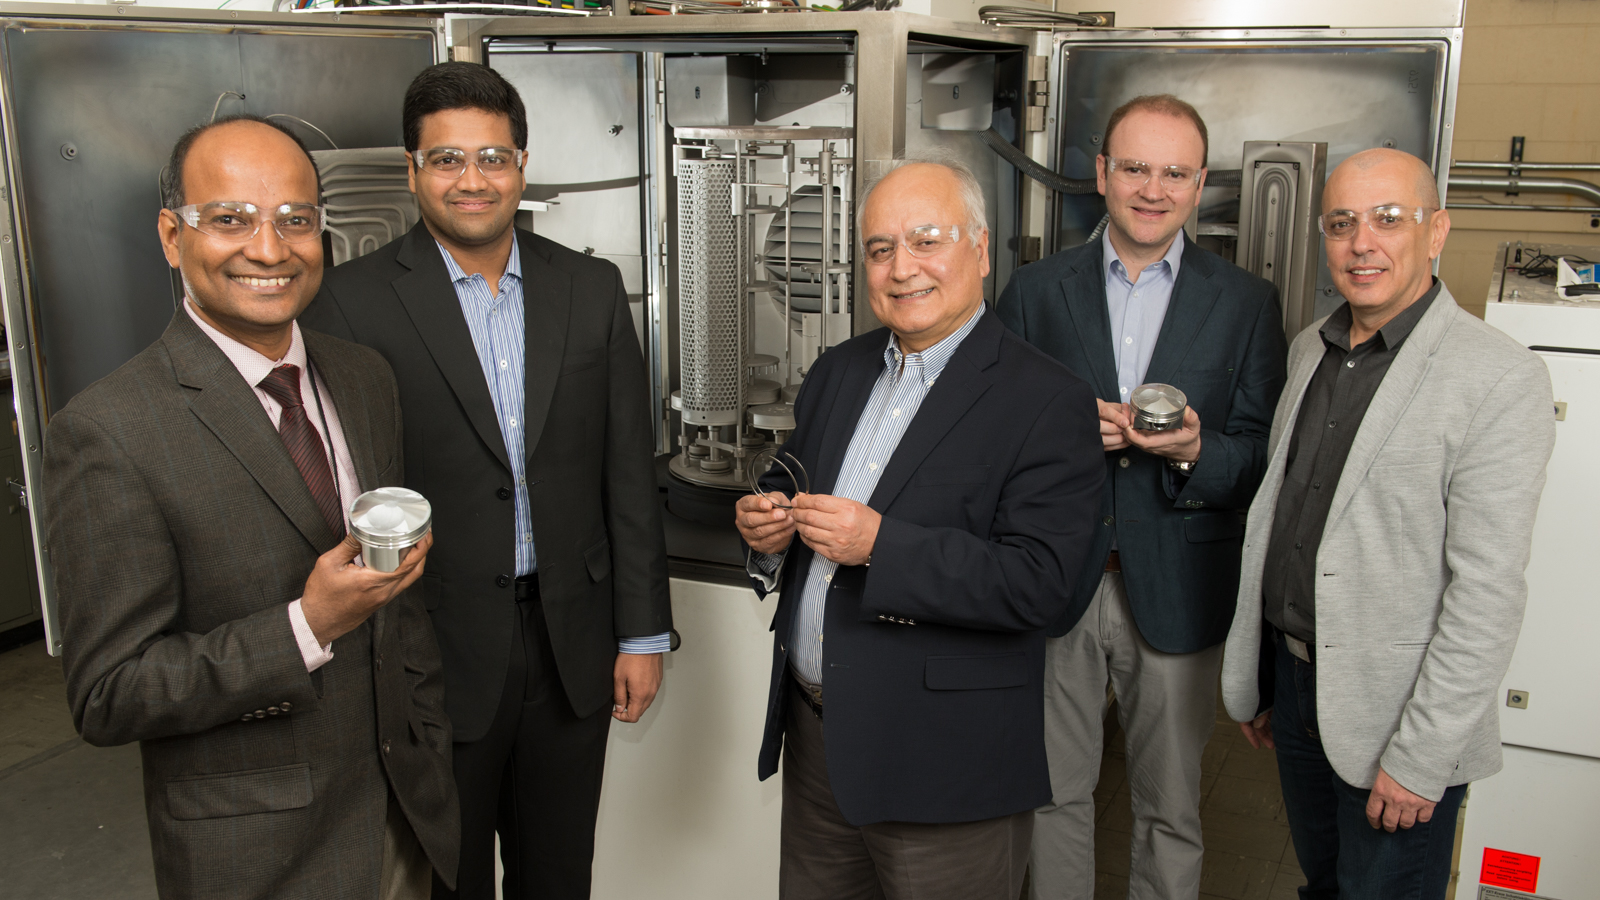 Five Argonne scientists and engineers